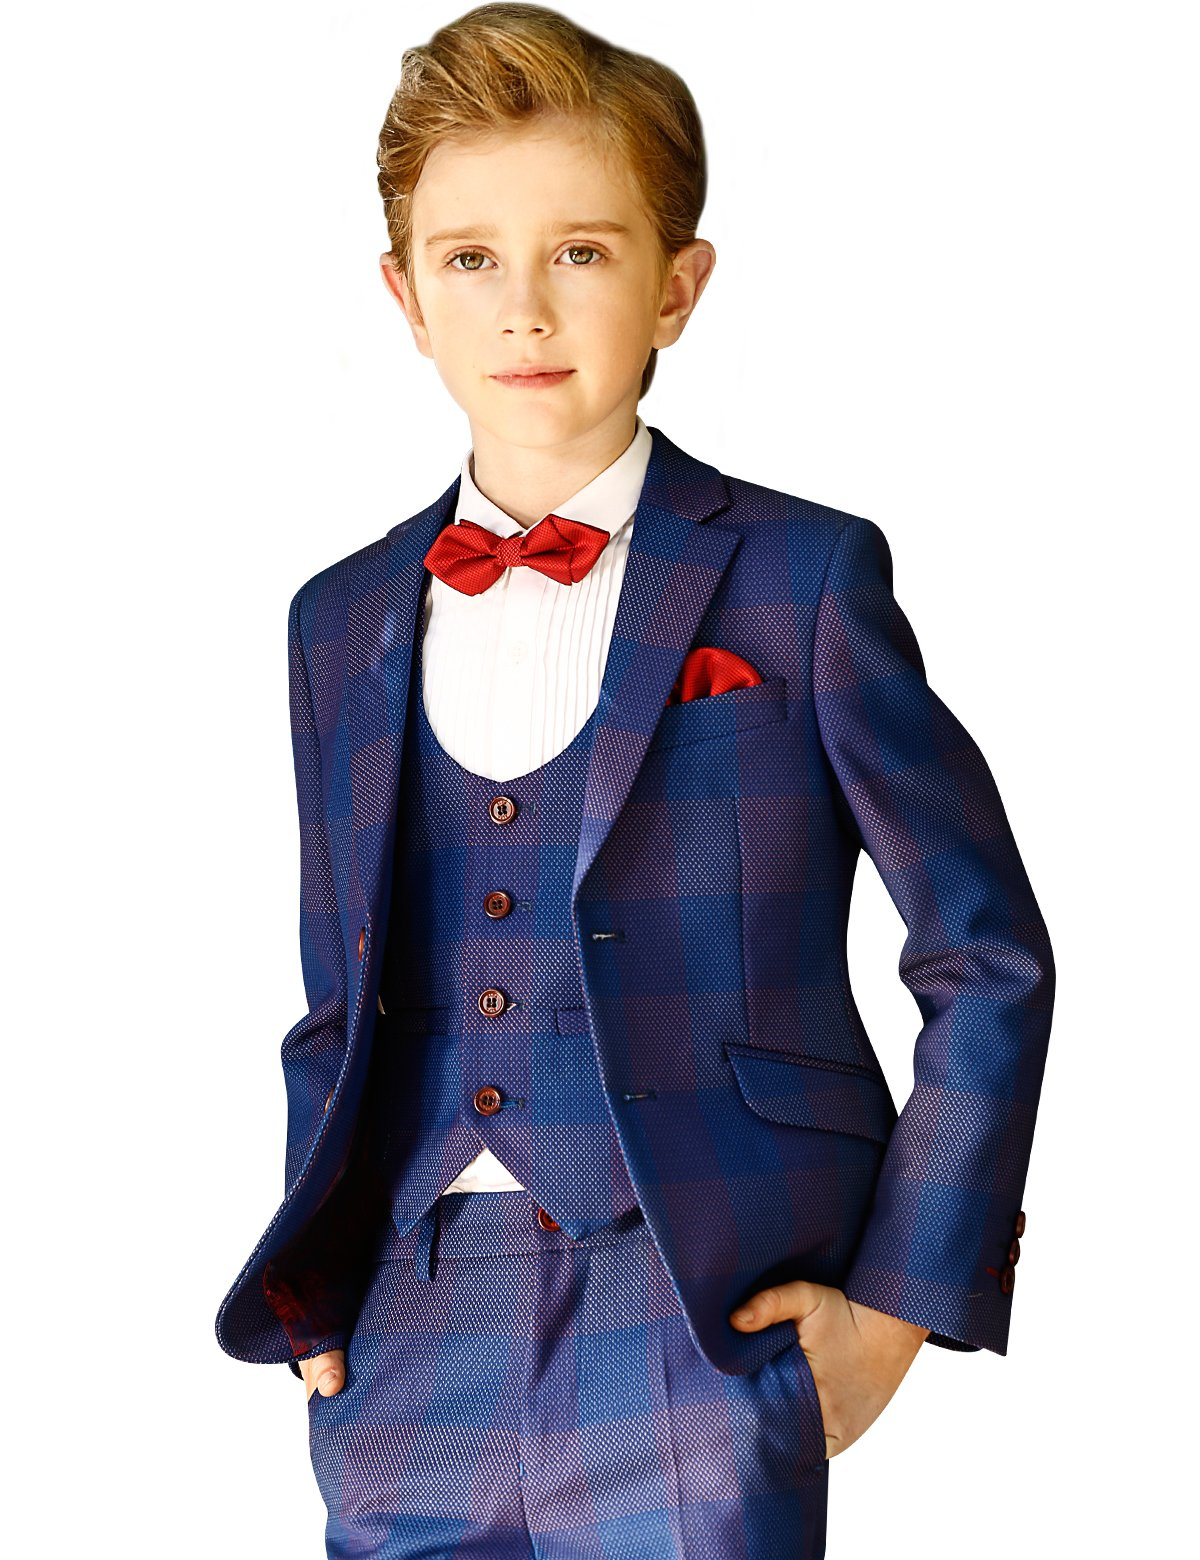 ELPA ELPA Children Boys Suits London Boys 6 Piece Casual Classic Plaid Suits(Royal Blue,10)